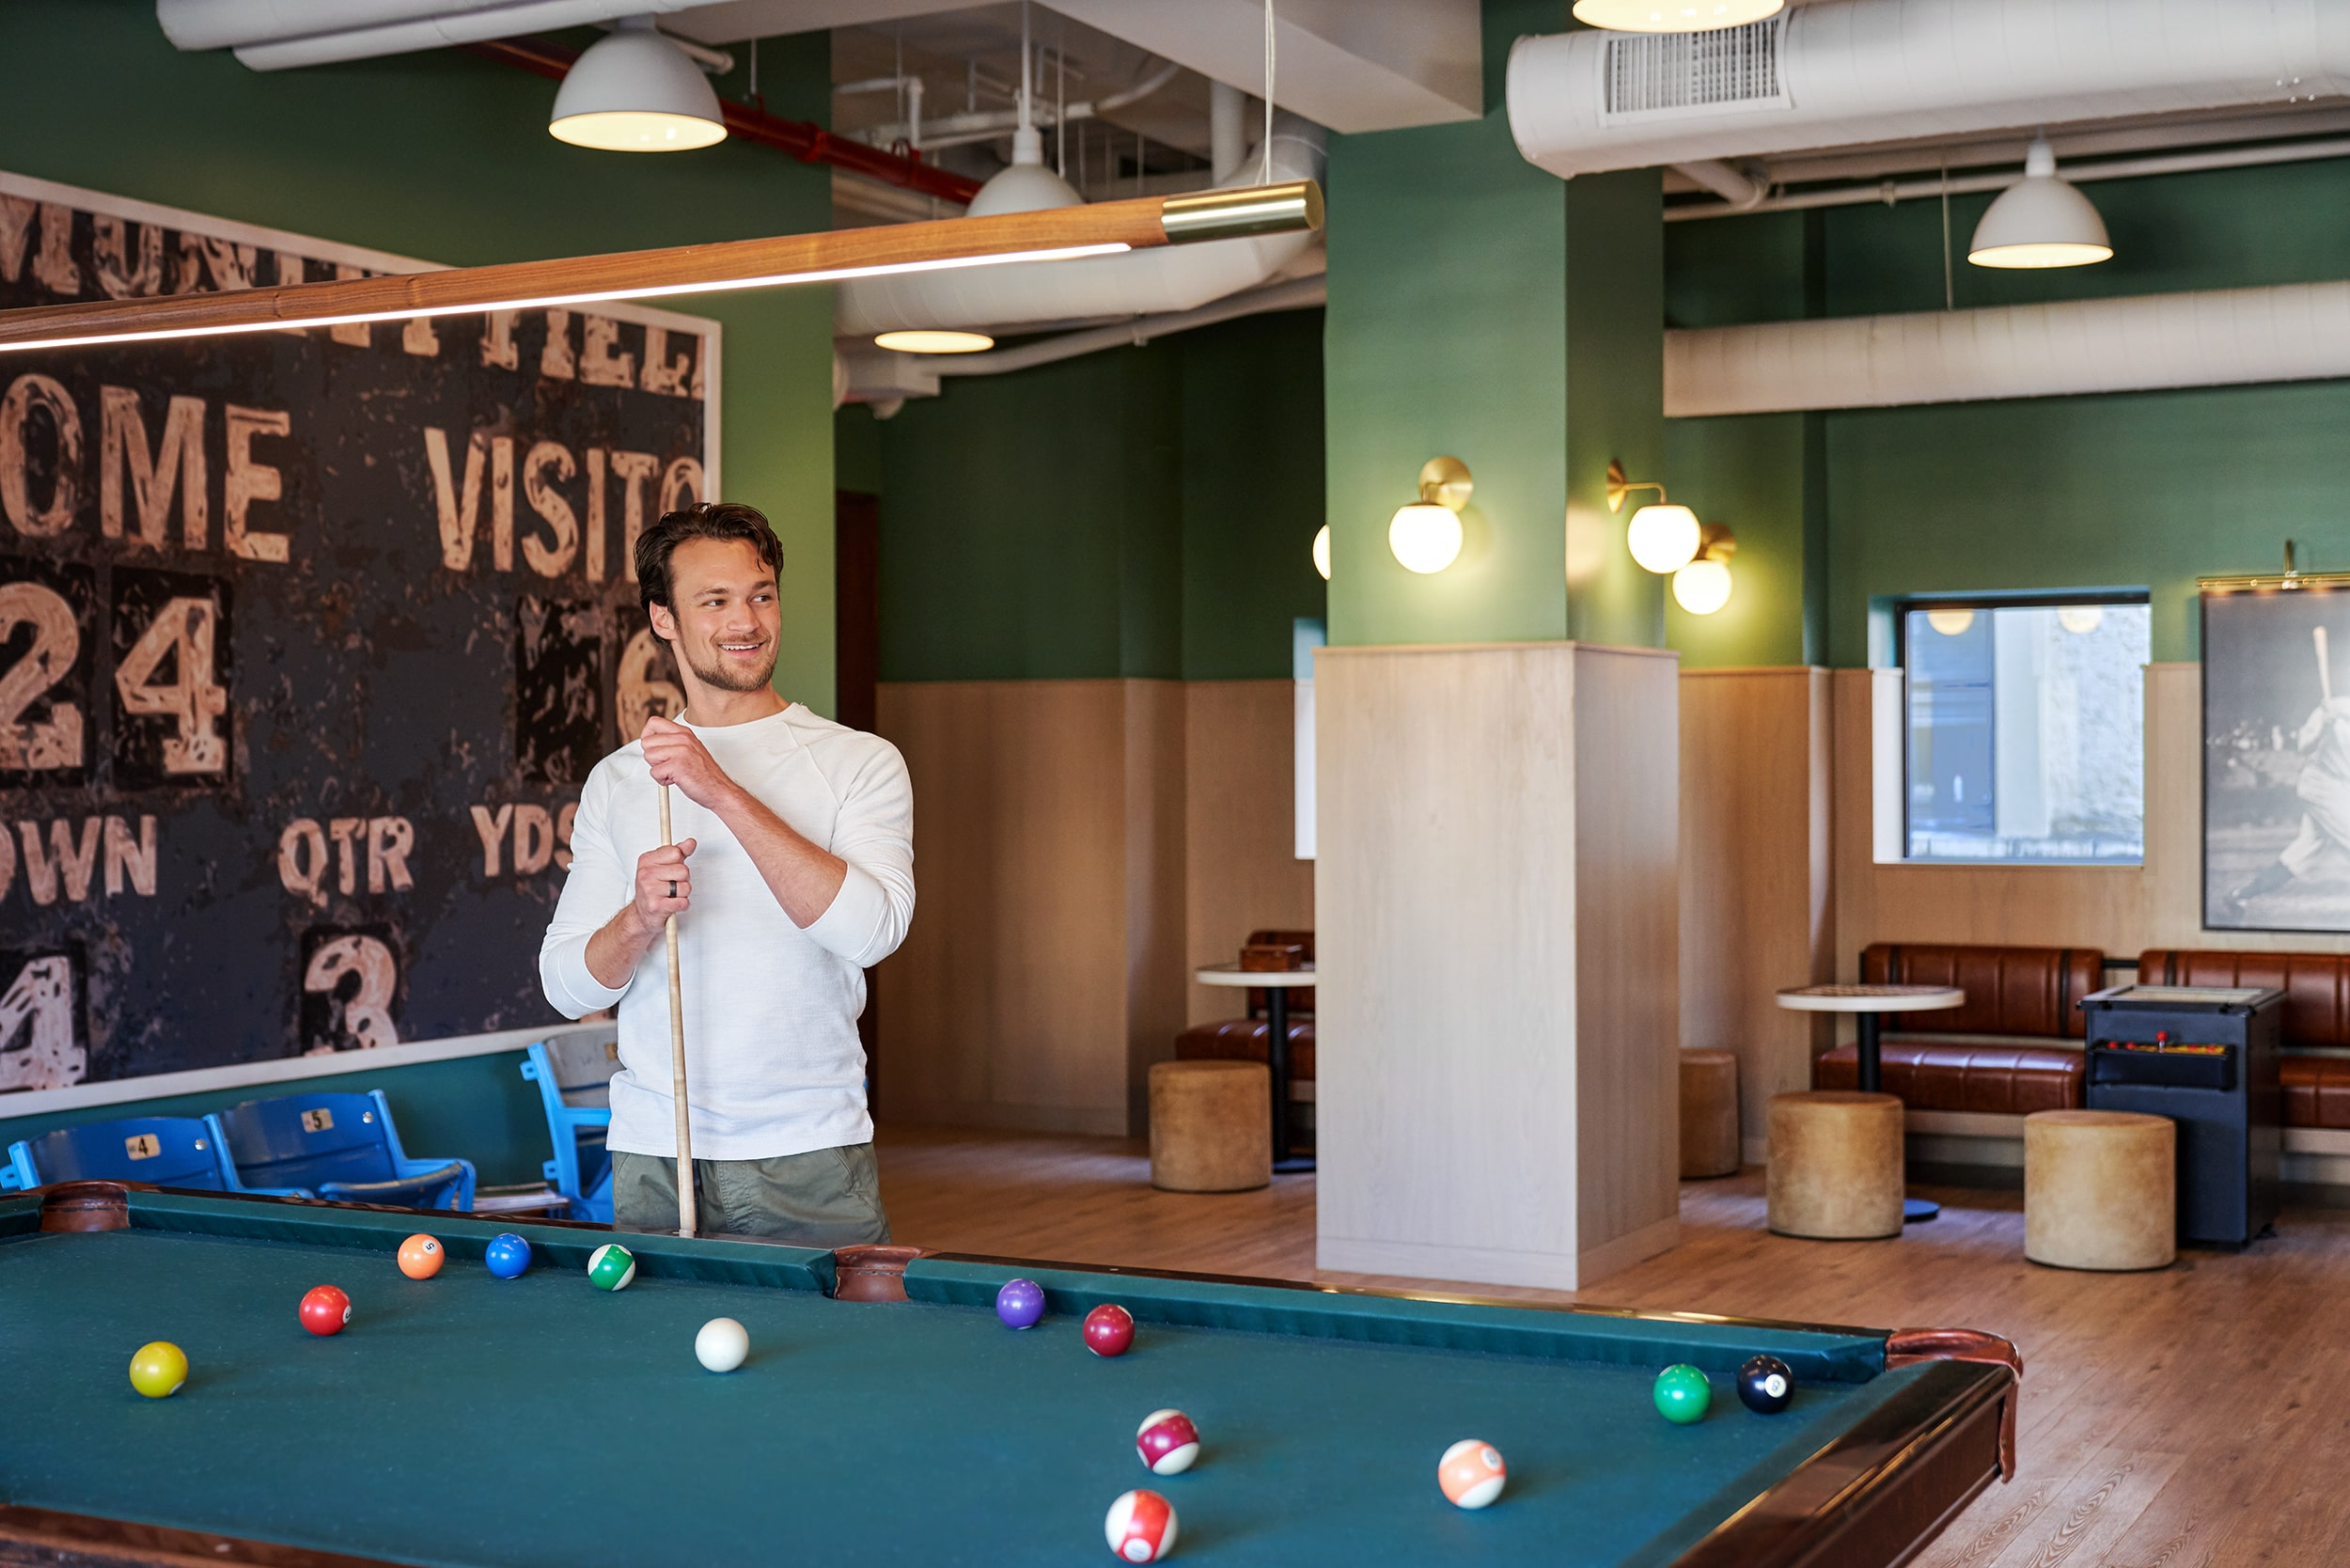 Resident standing at pool table